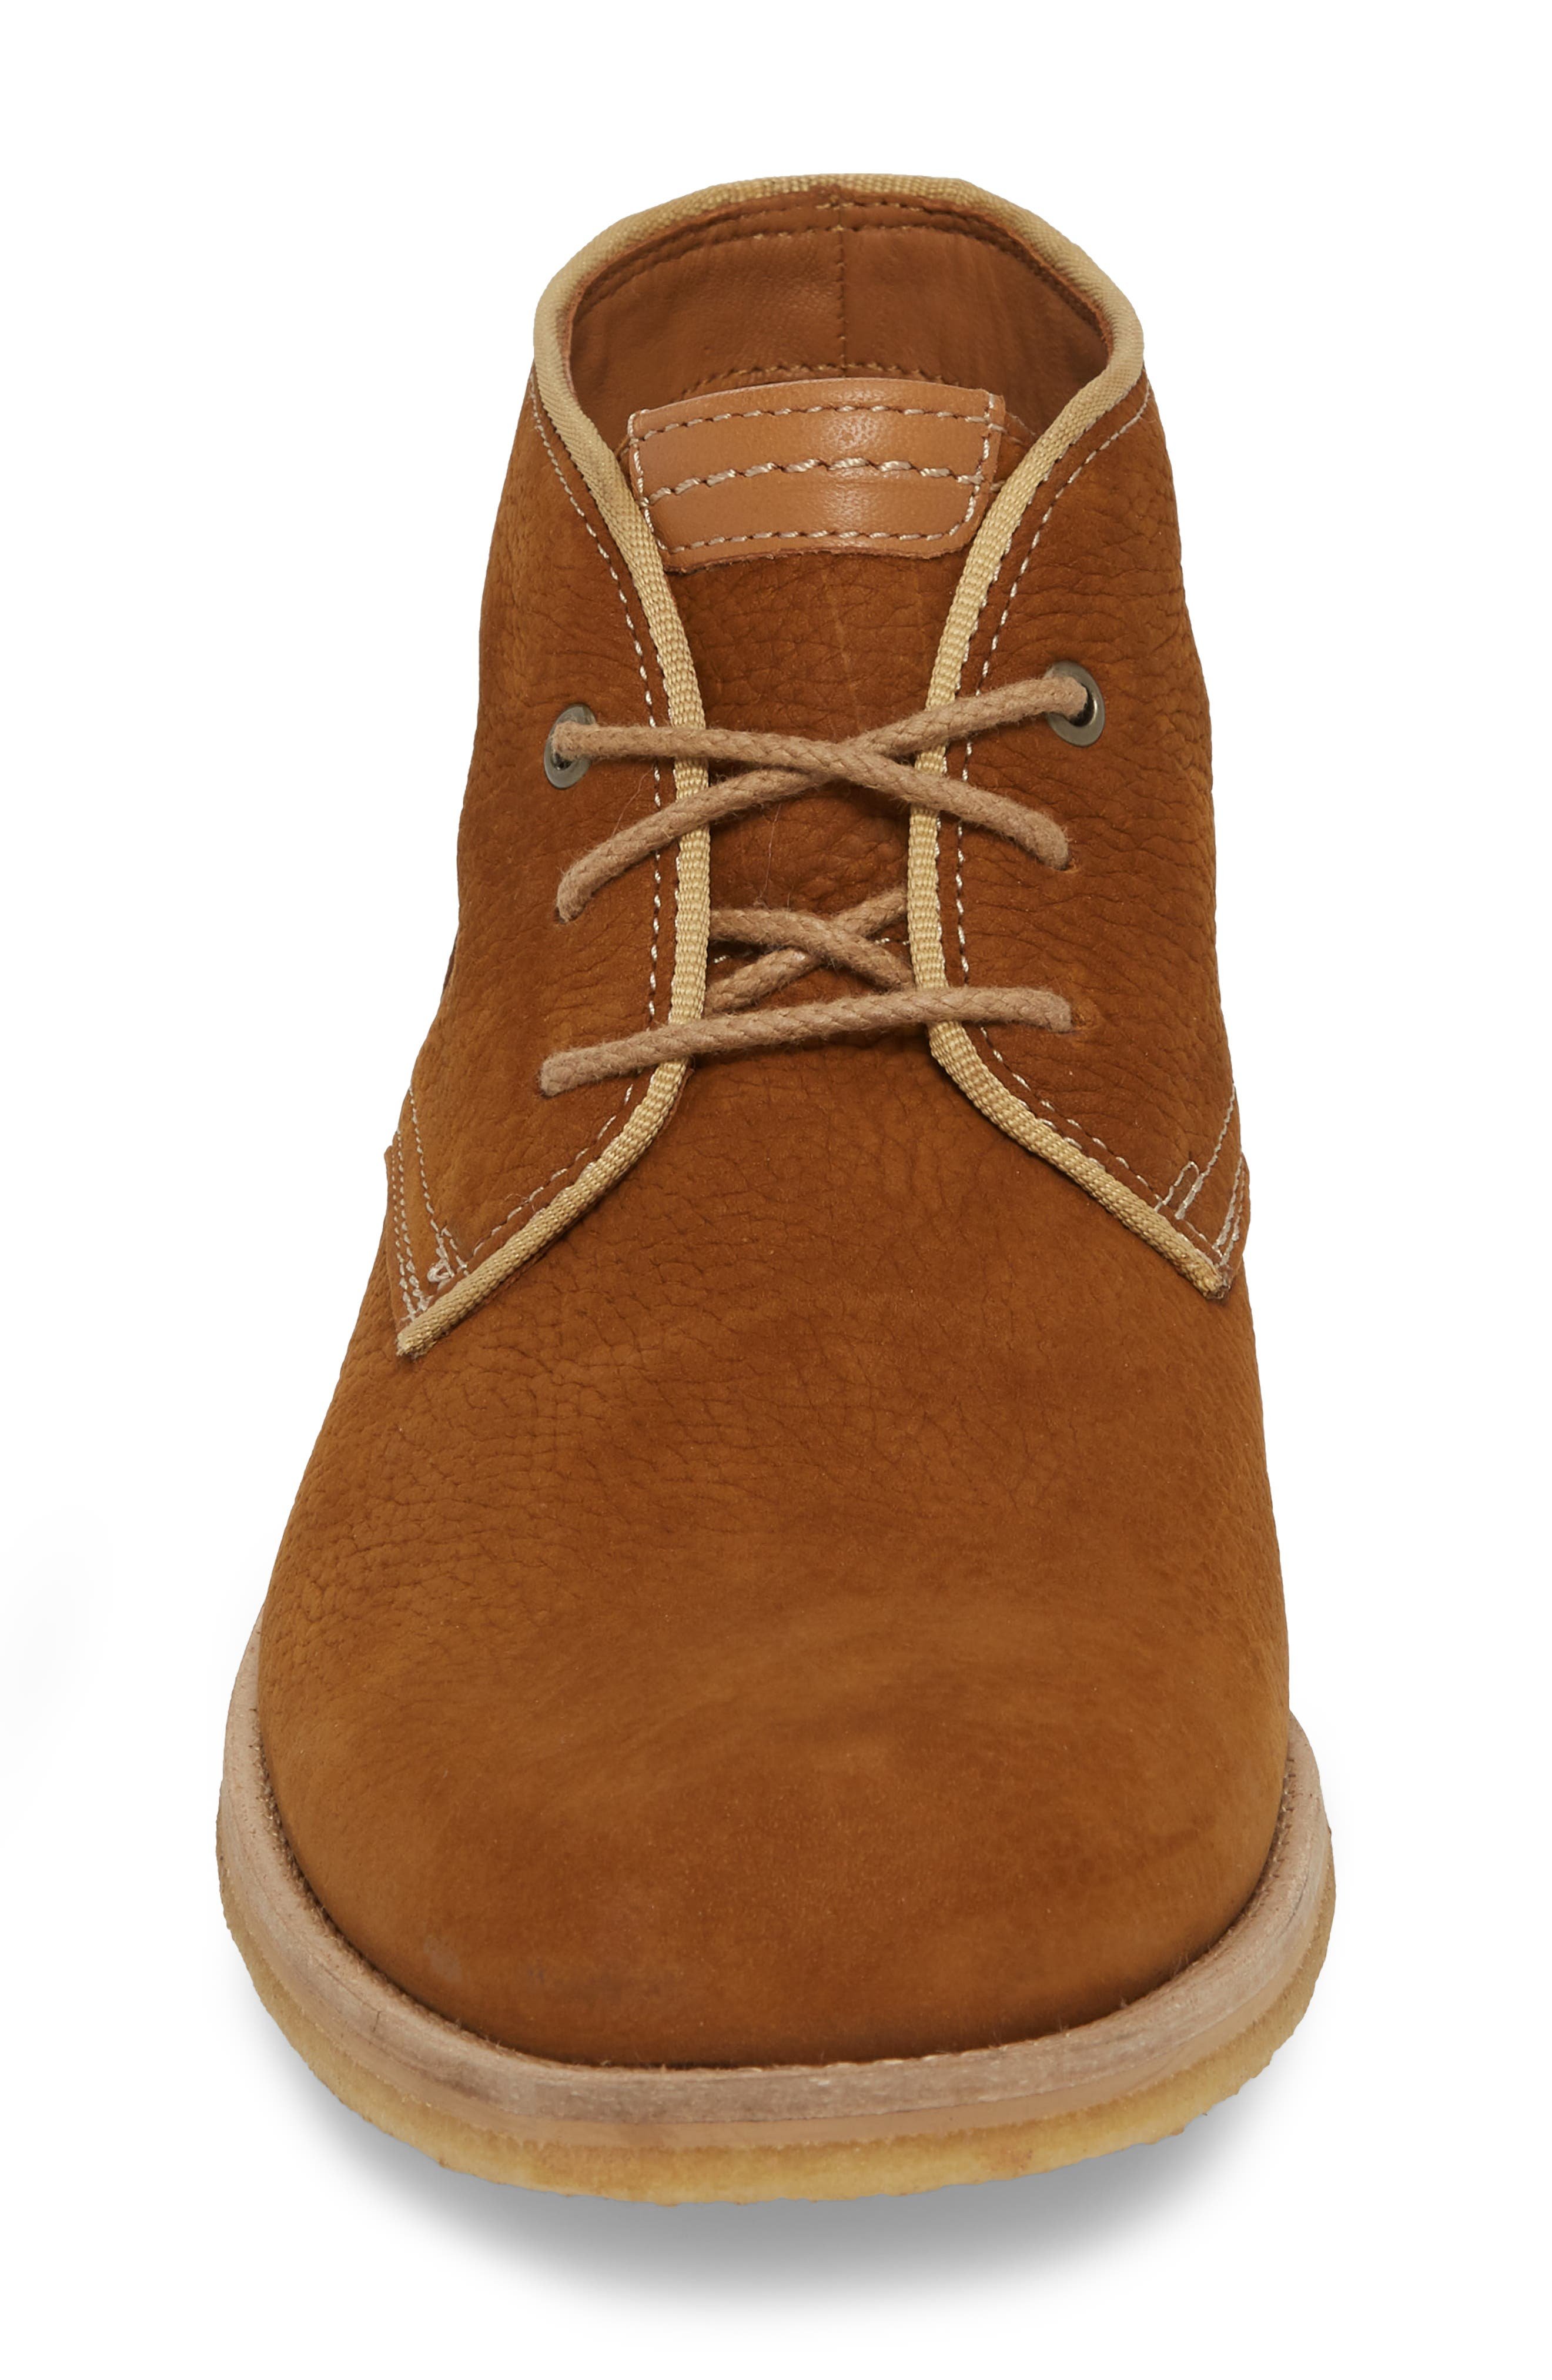 Howell Water Resistant Chukka Boot,                             Alternate thumbnail 4, color,                             240